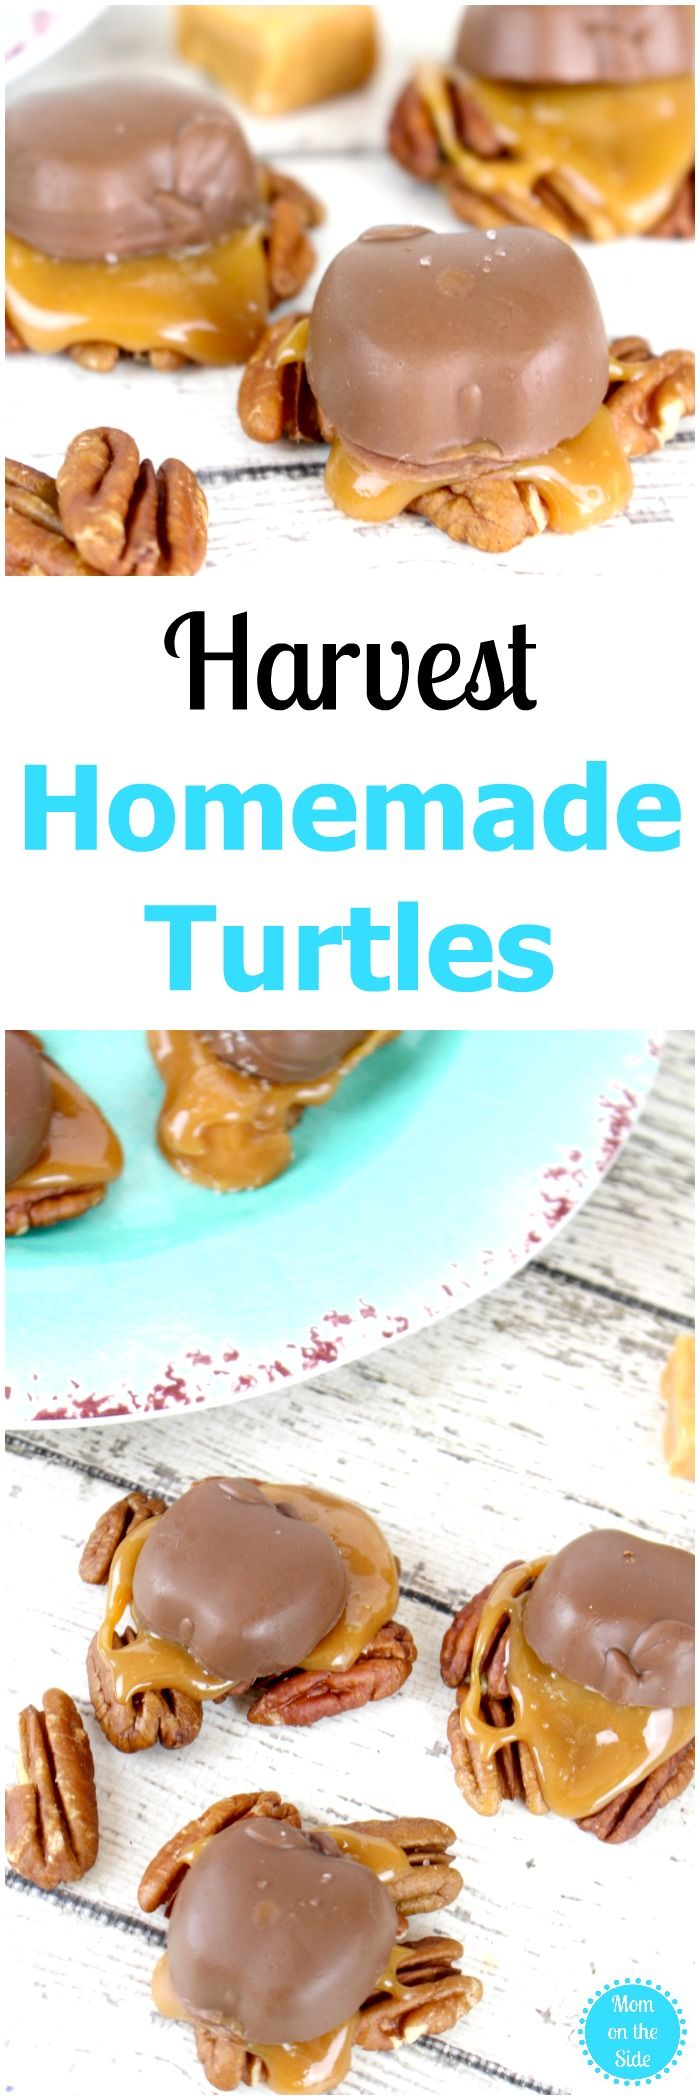 A delicious fall dessert, these Harvest Homemade Turtles are easy and full of fall flavor! #fall #autumn #dessesrts #falldesserts #chocolate